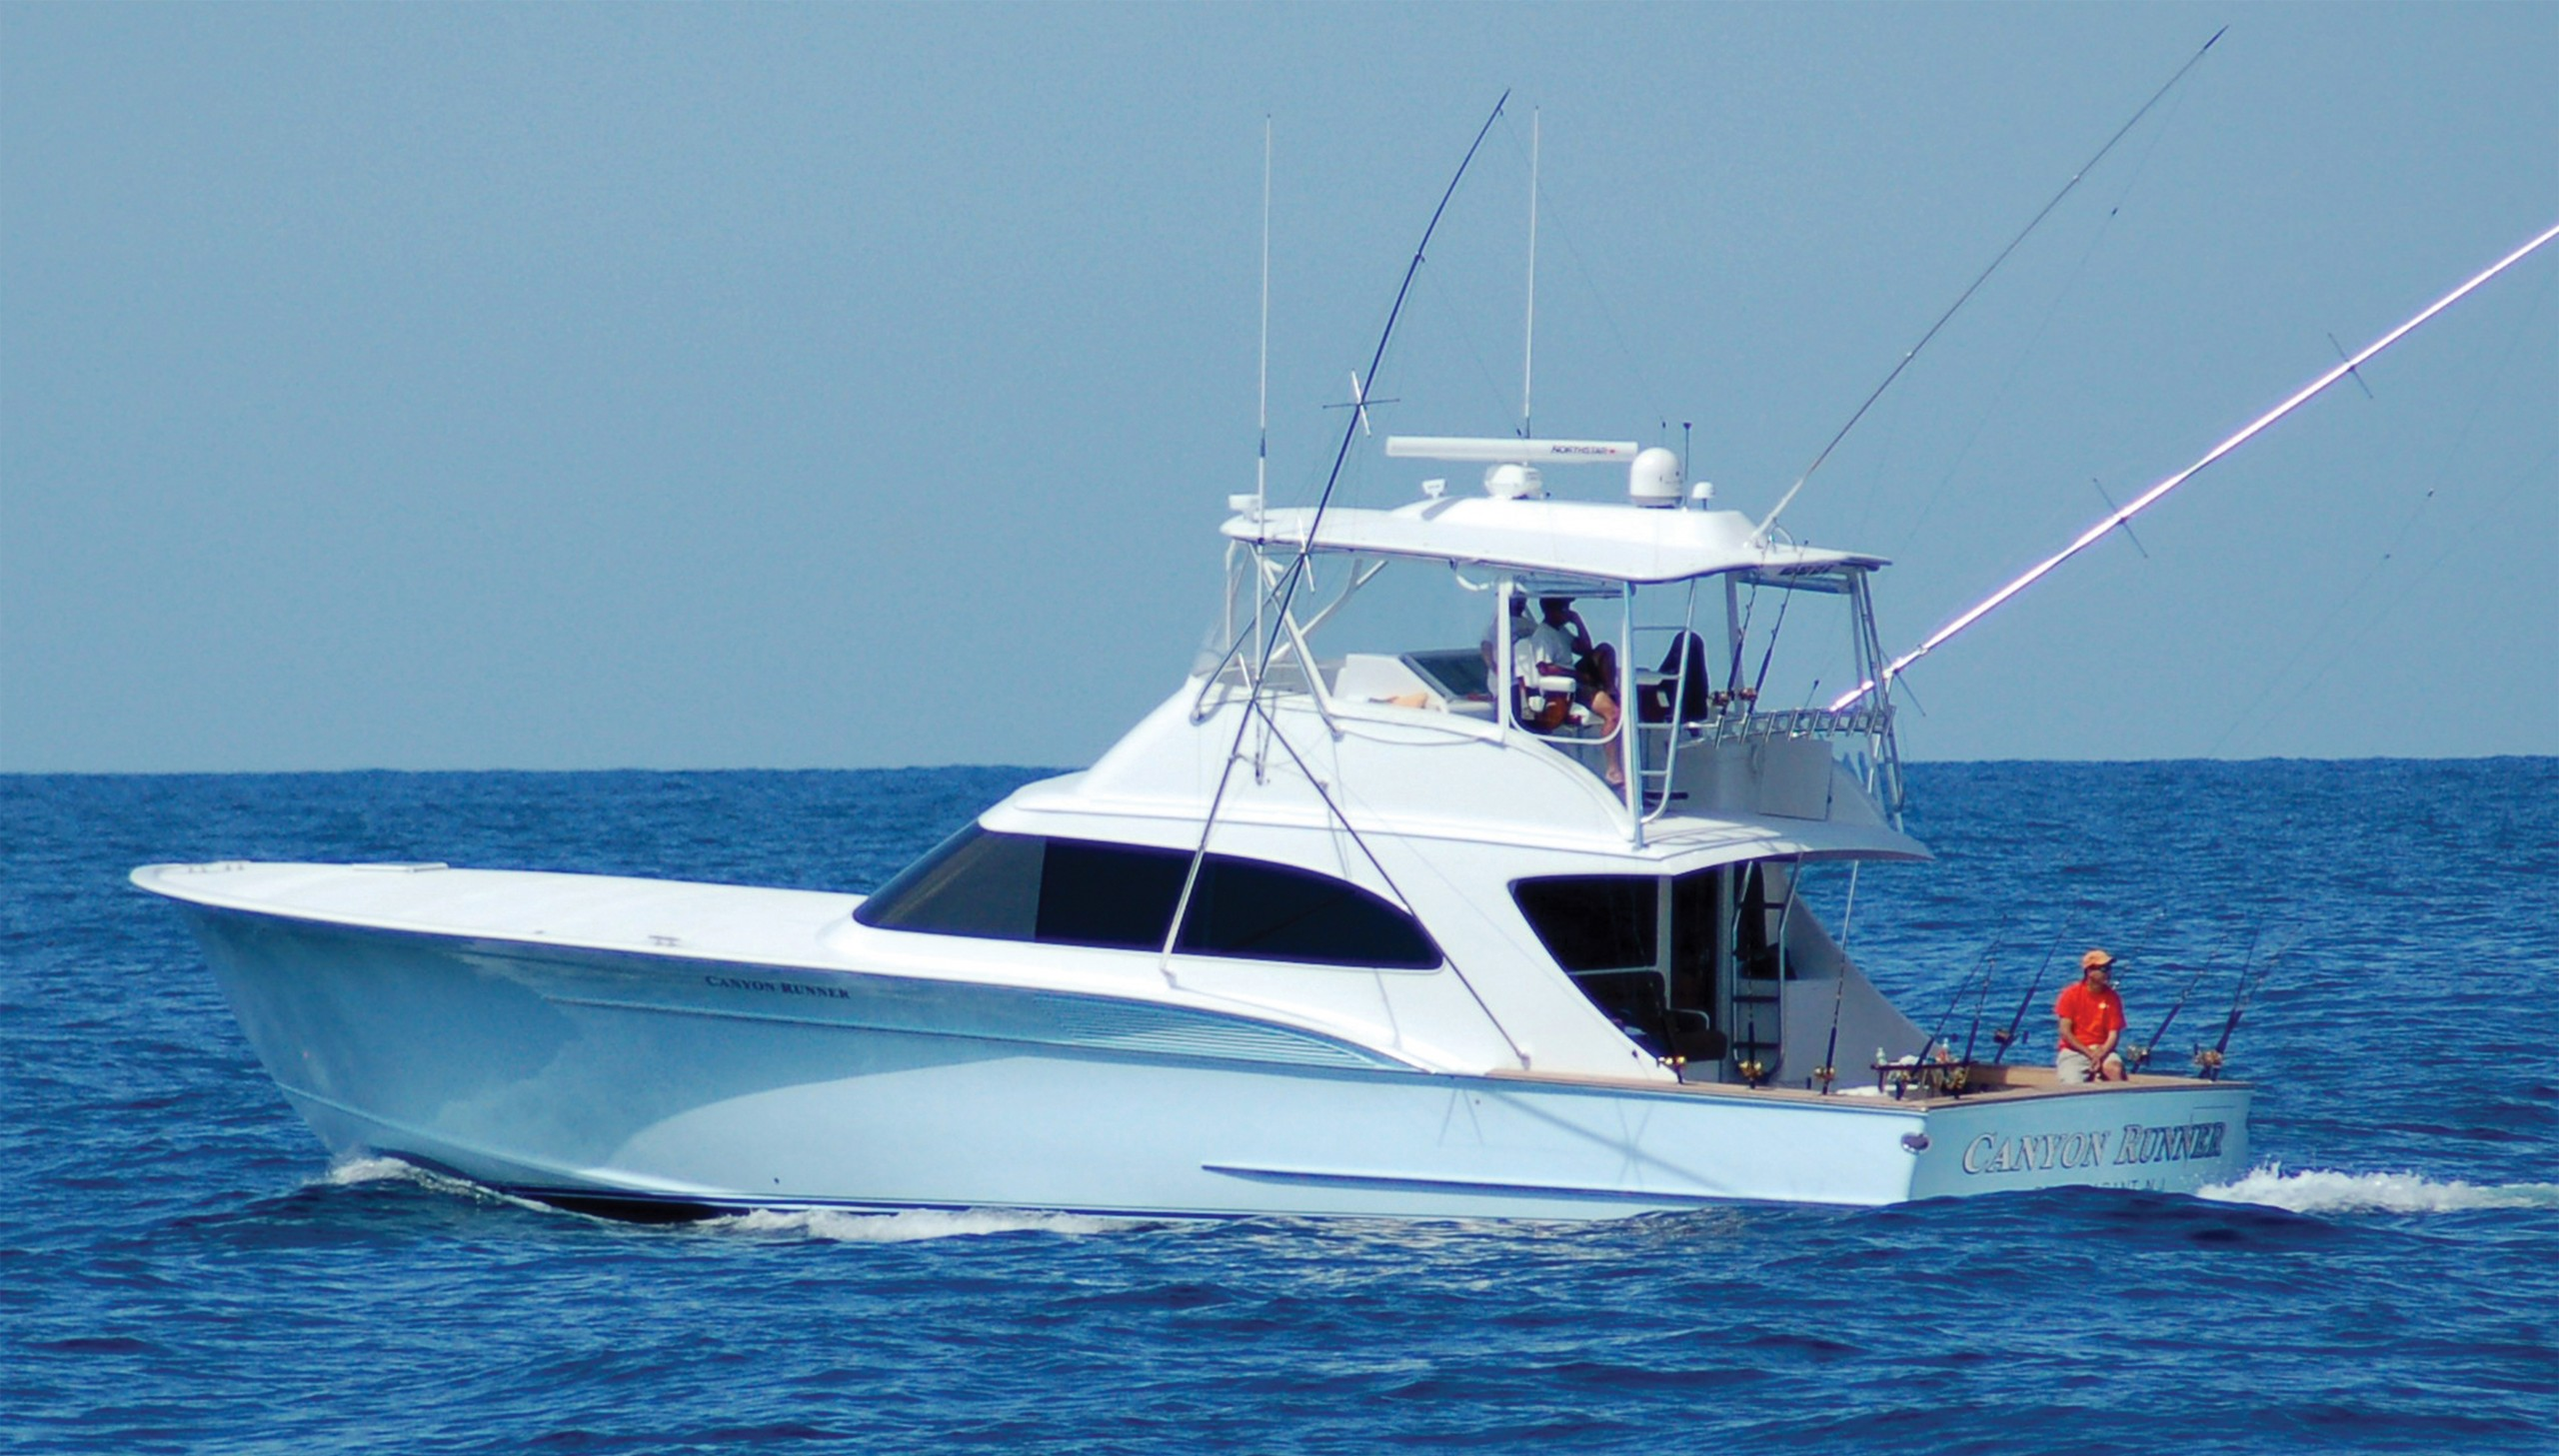 Canyon Runner sportfish boat trolling on blue ocean